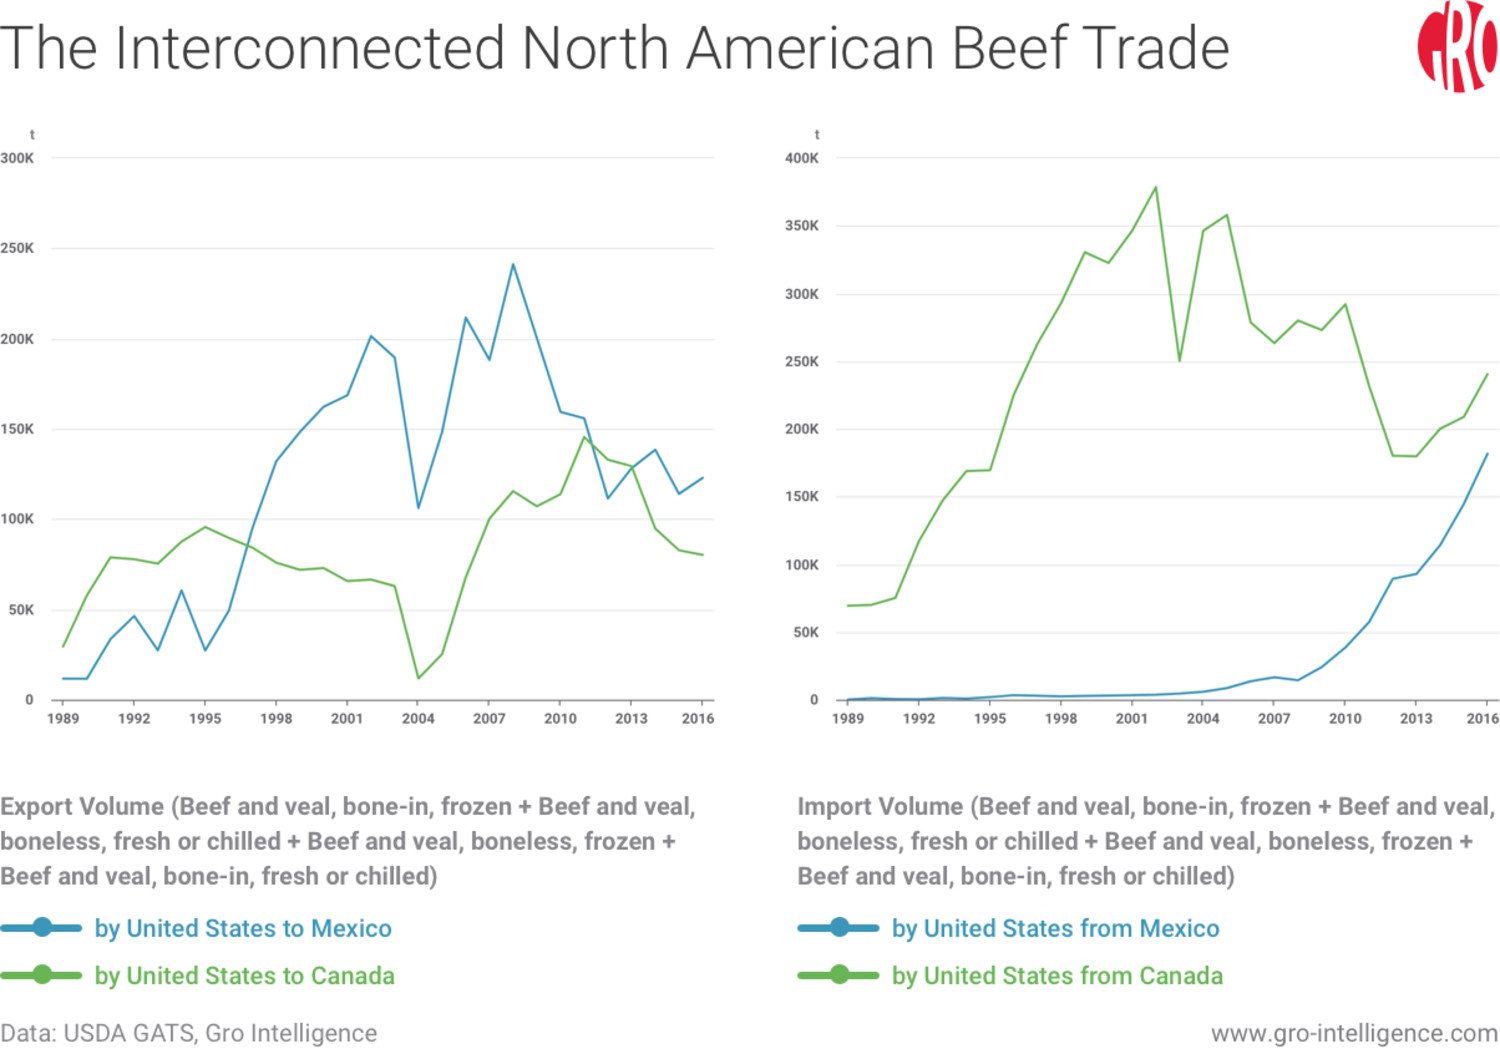 The Interconnected North American Beef Trade